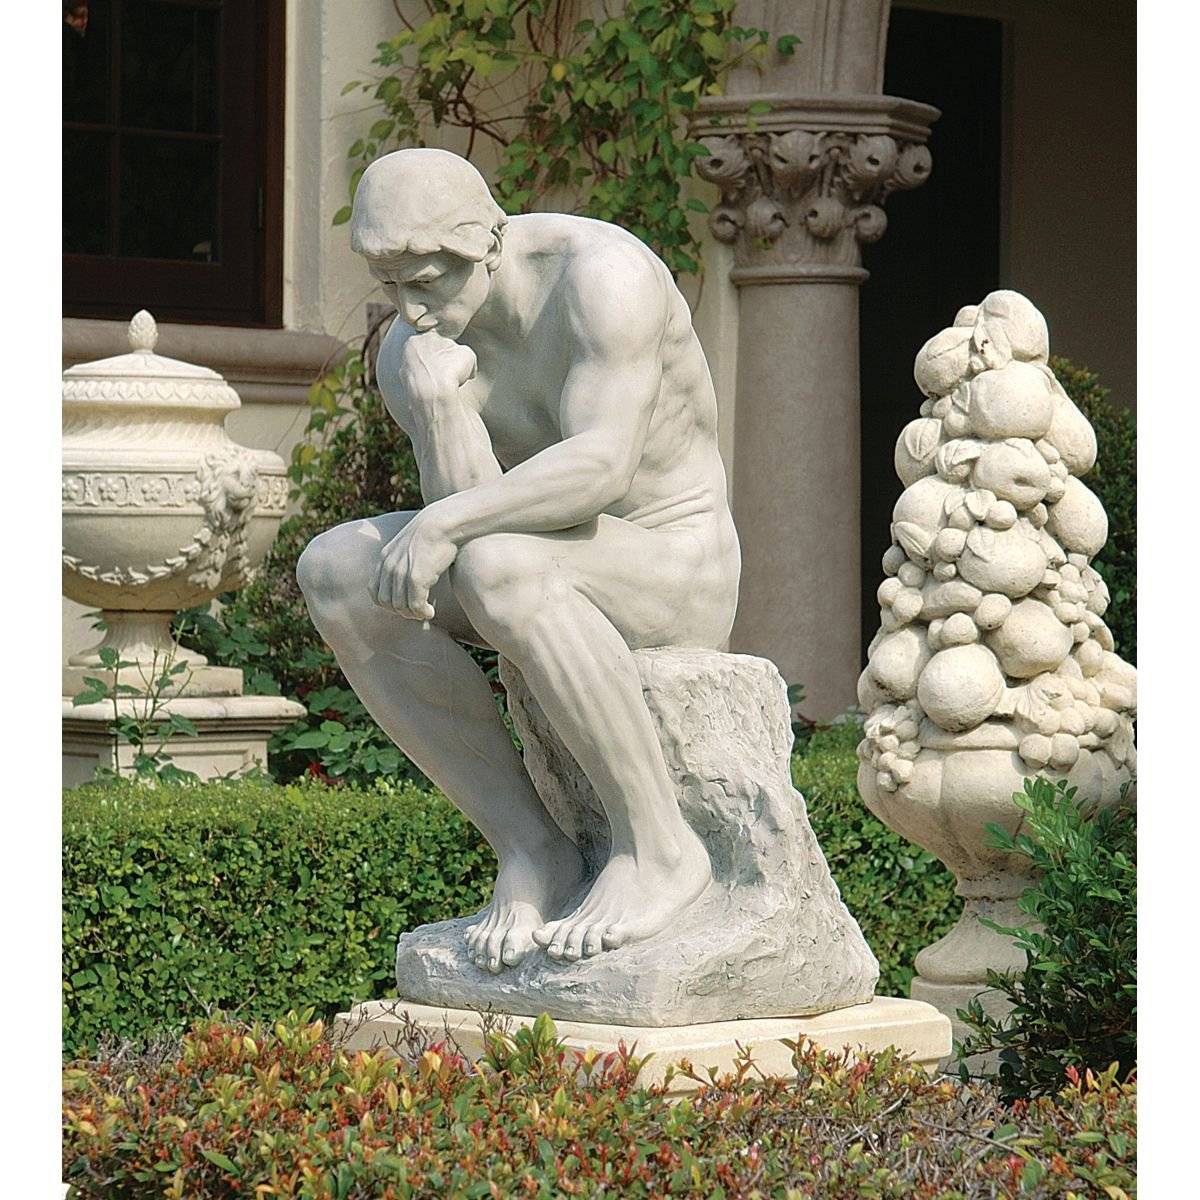 High Quality Amazon.com : Design Toscano The Thinker Garden Statue : Outdoor Statues :  Garden U0026 Outdoor